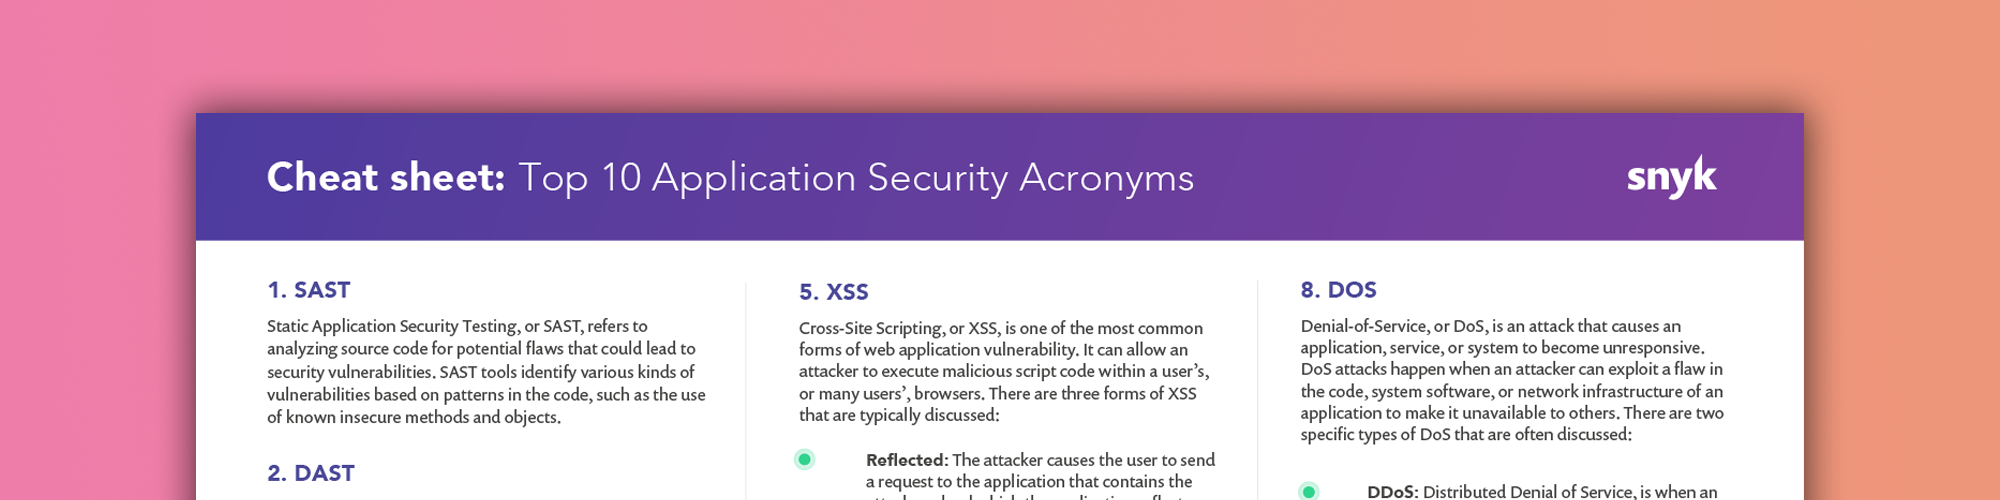 security acronyms